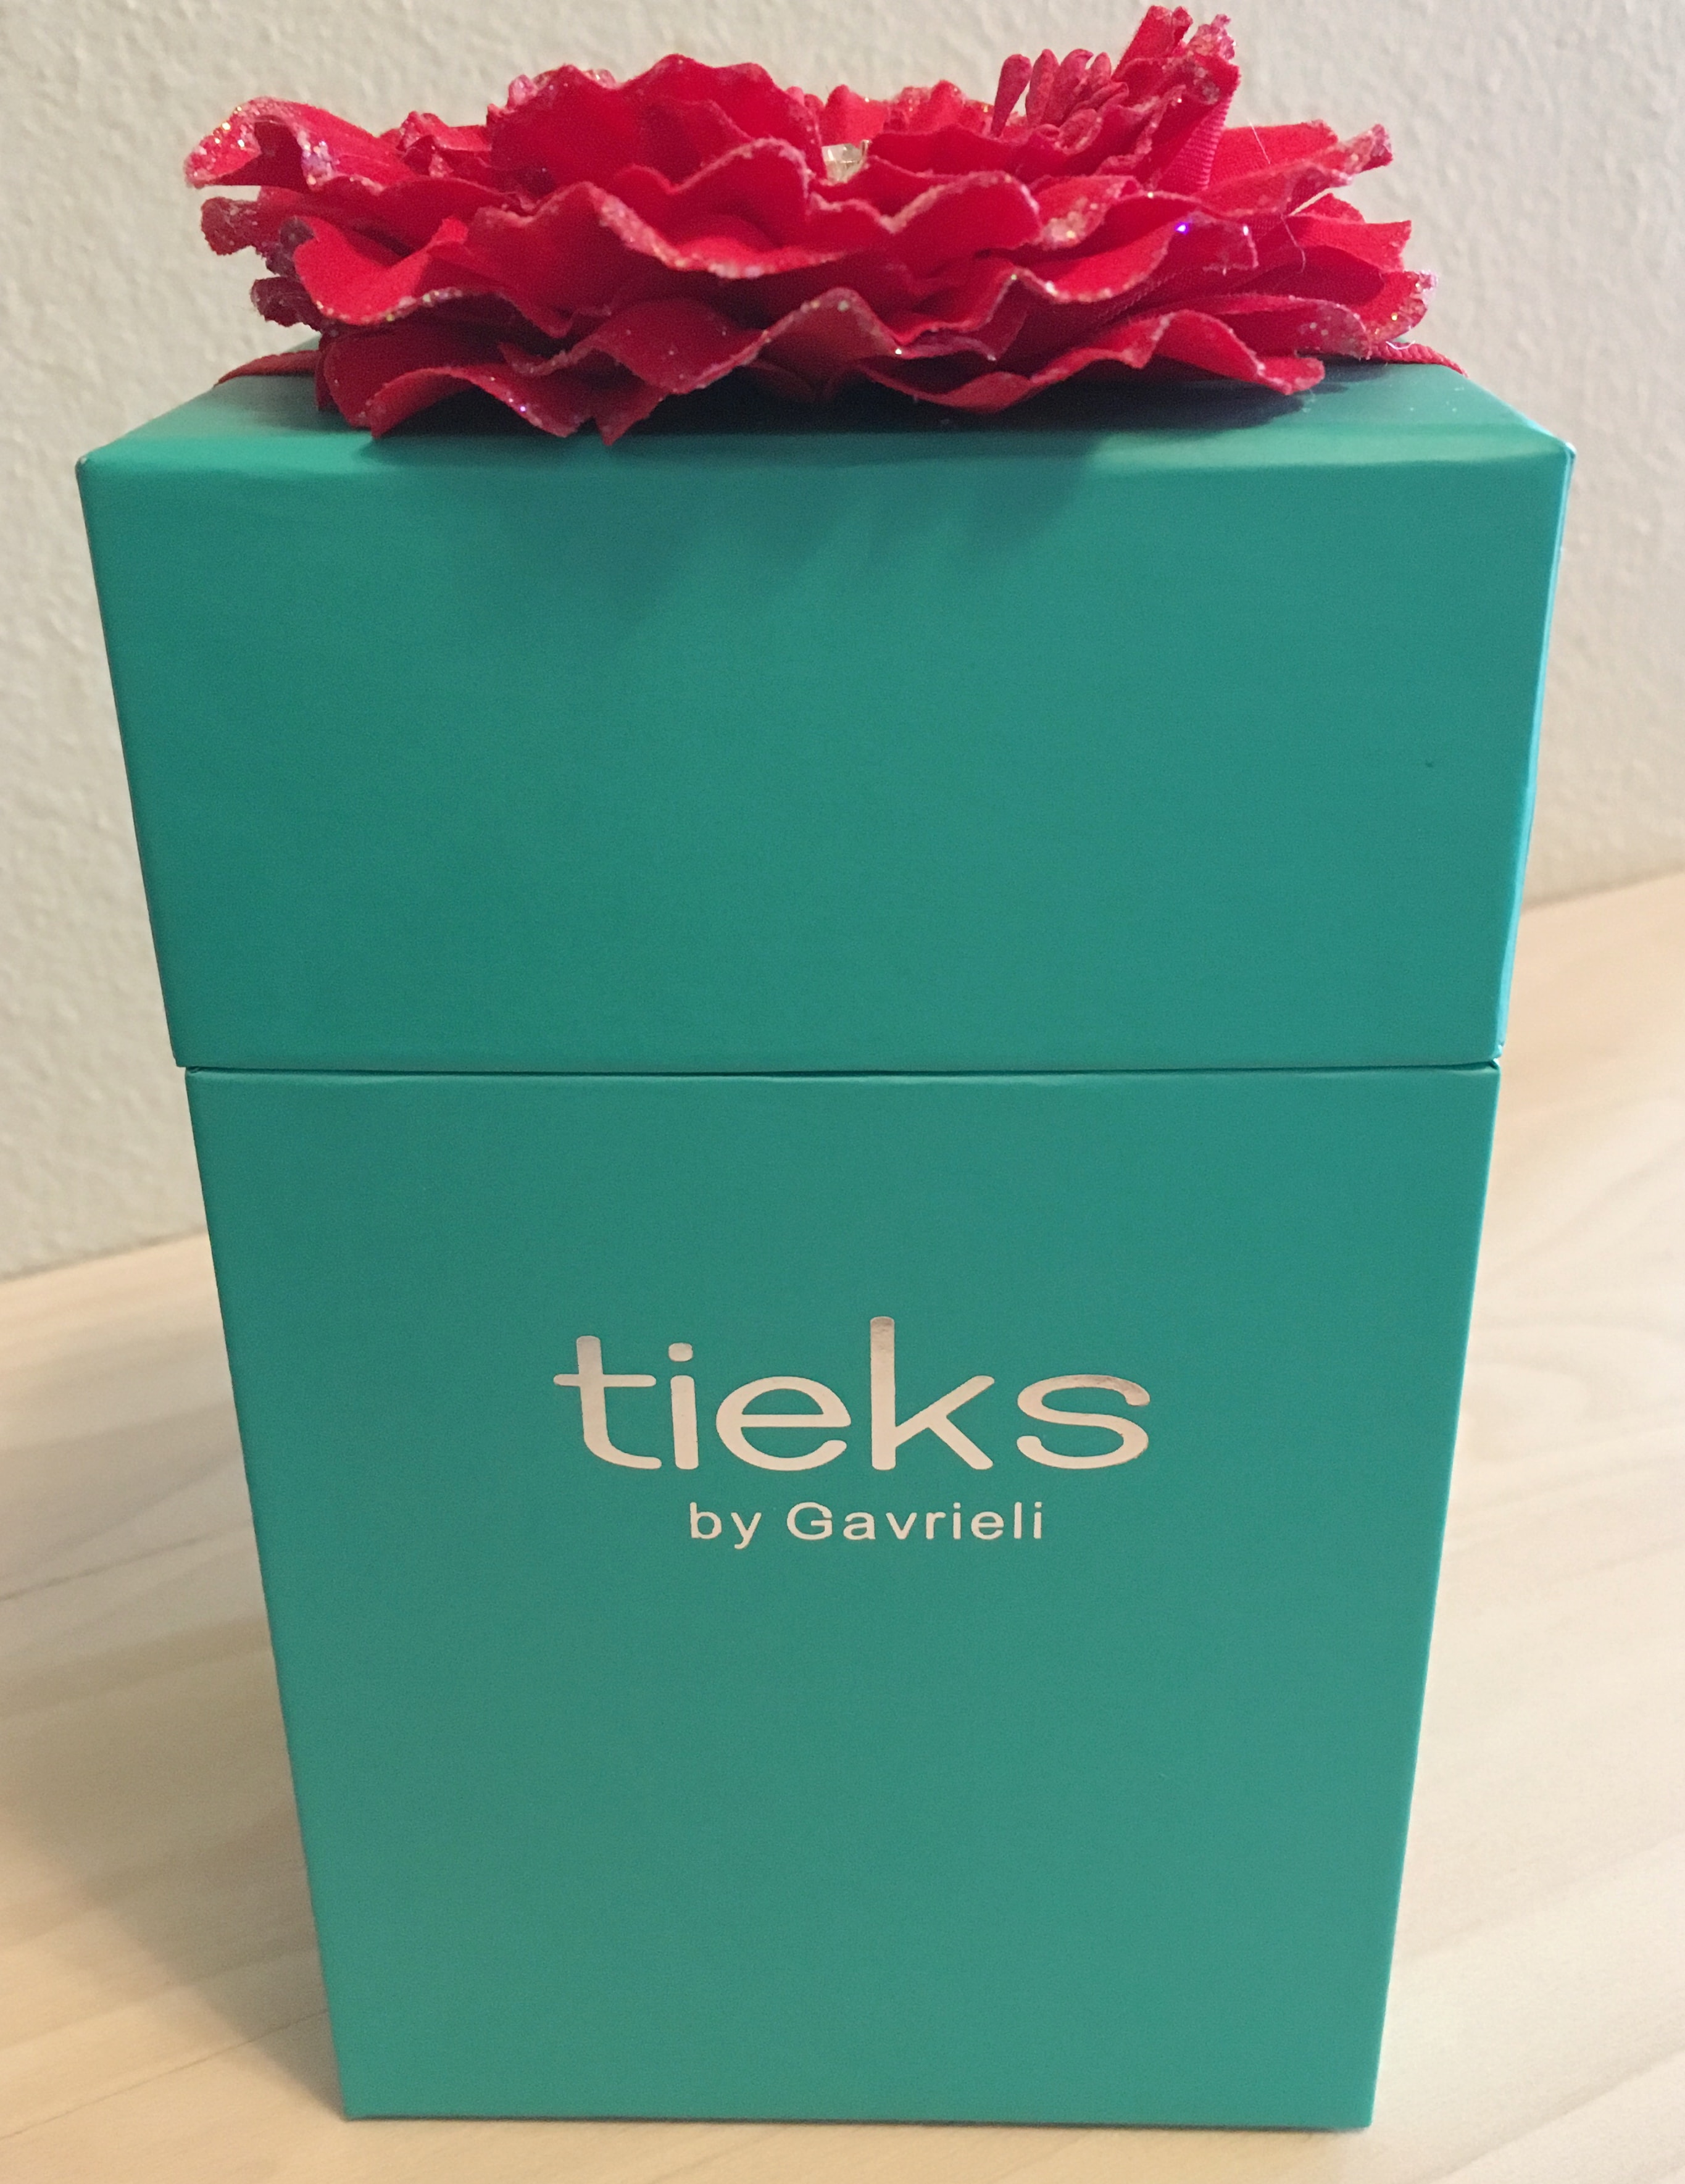 Interested in Tieks? Read this full Tieks Review before you do!